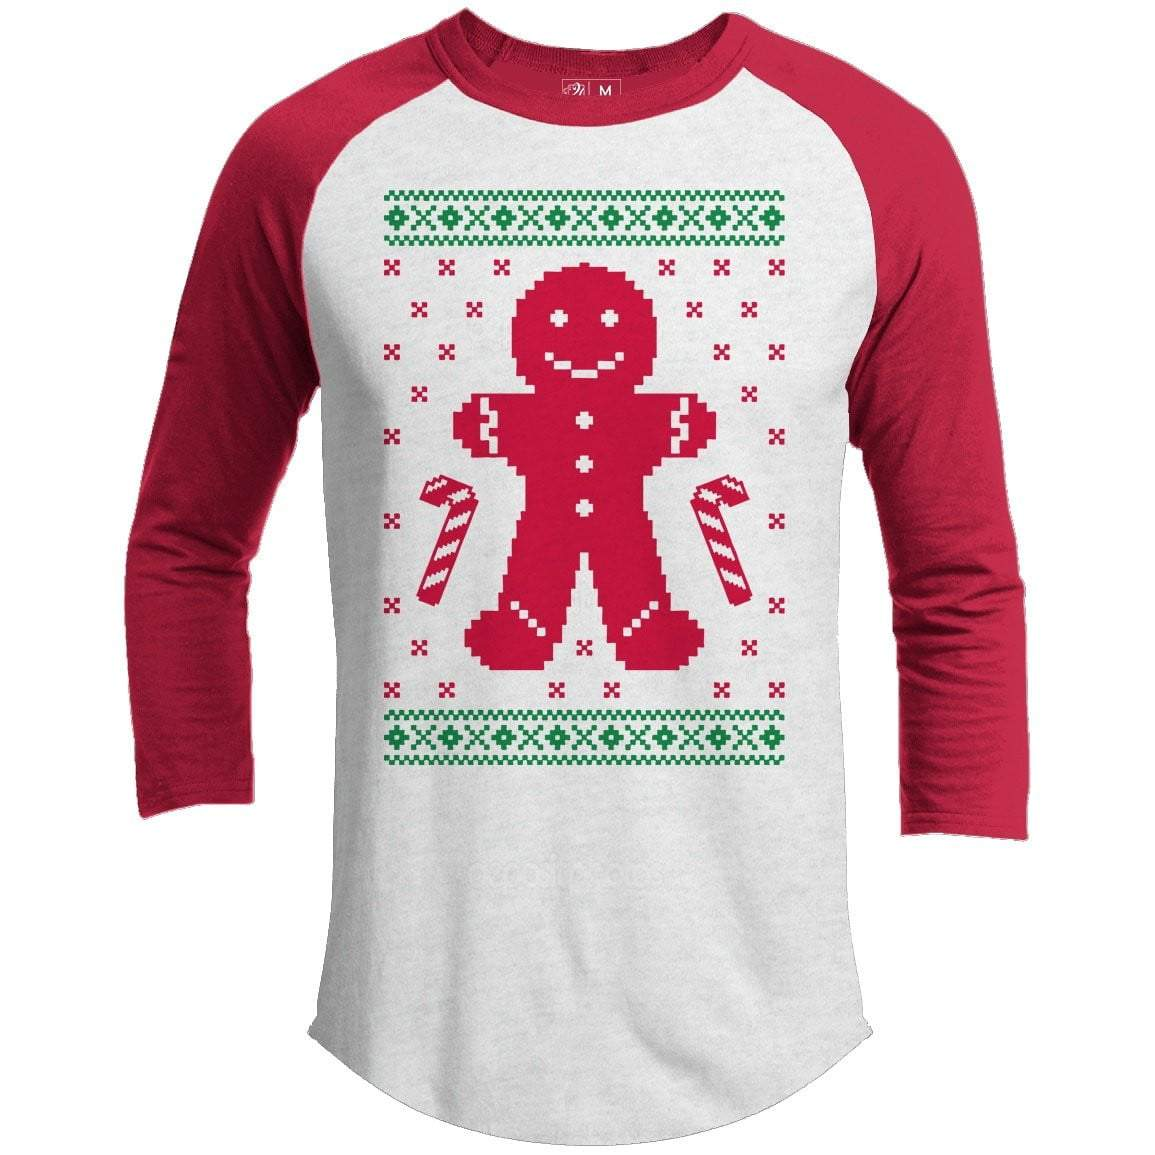 GINGERBREAD SWEATER Premium Youth Christmas Raglan